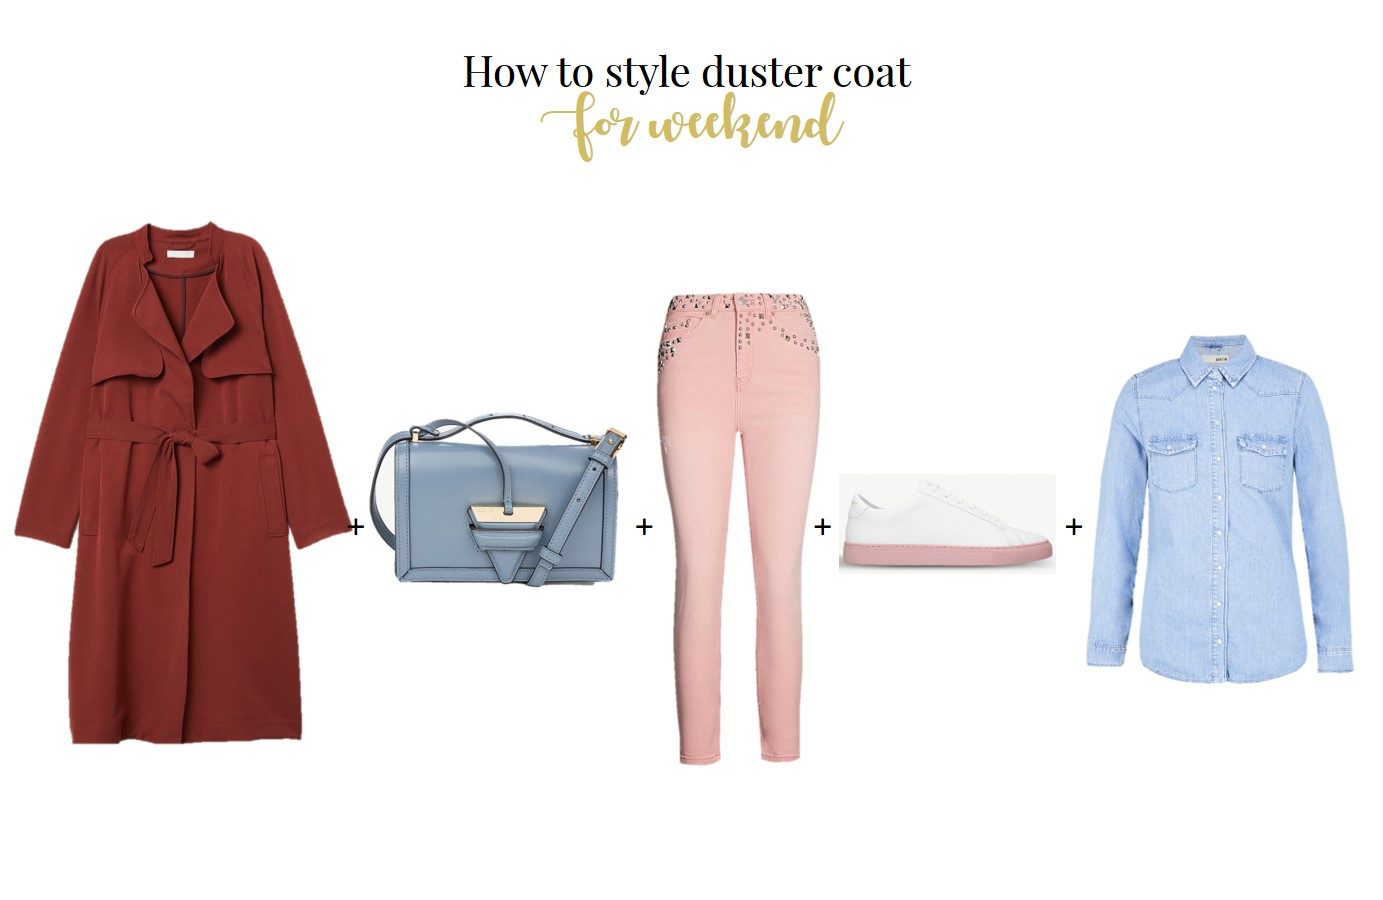 How to wear duster coat casual outfit inspiration for fall